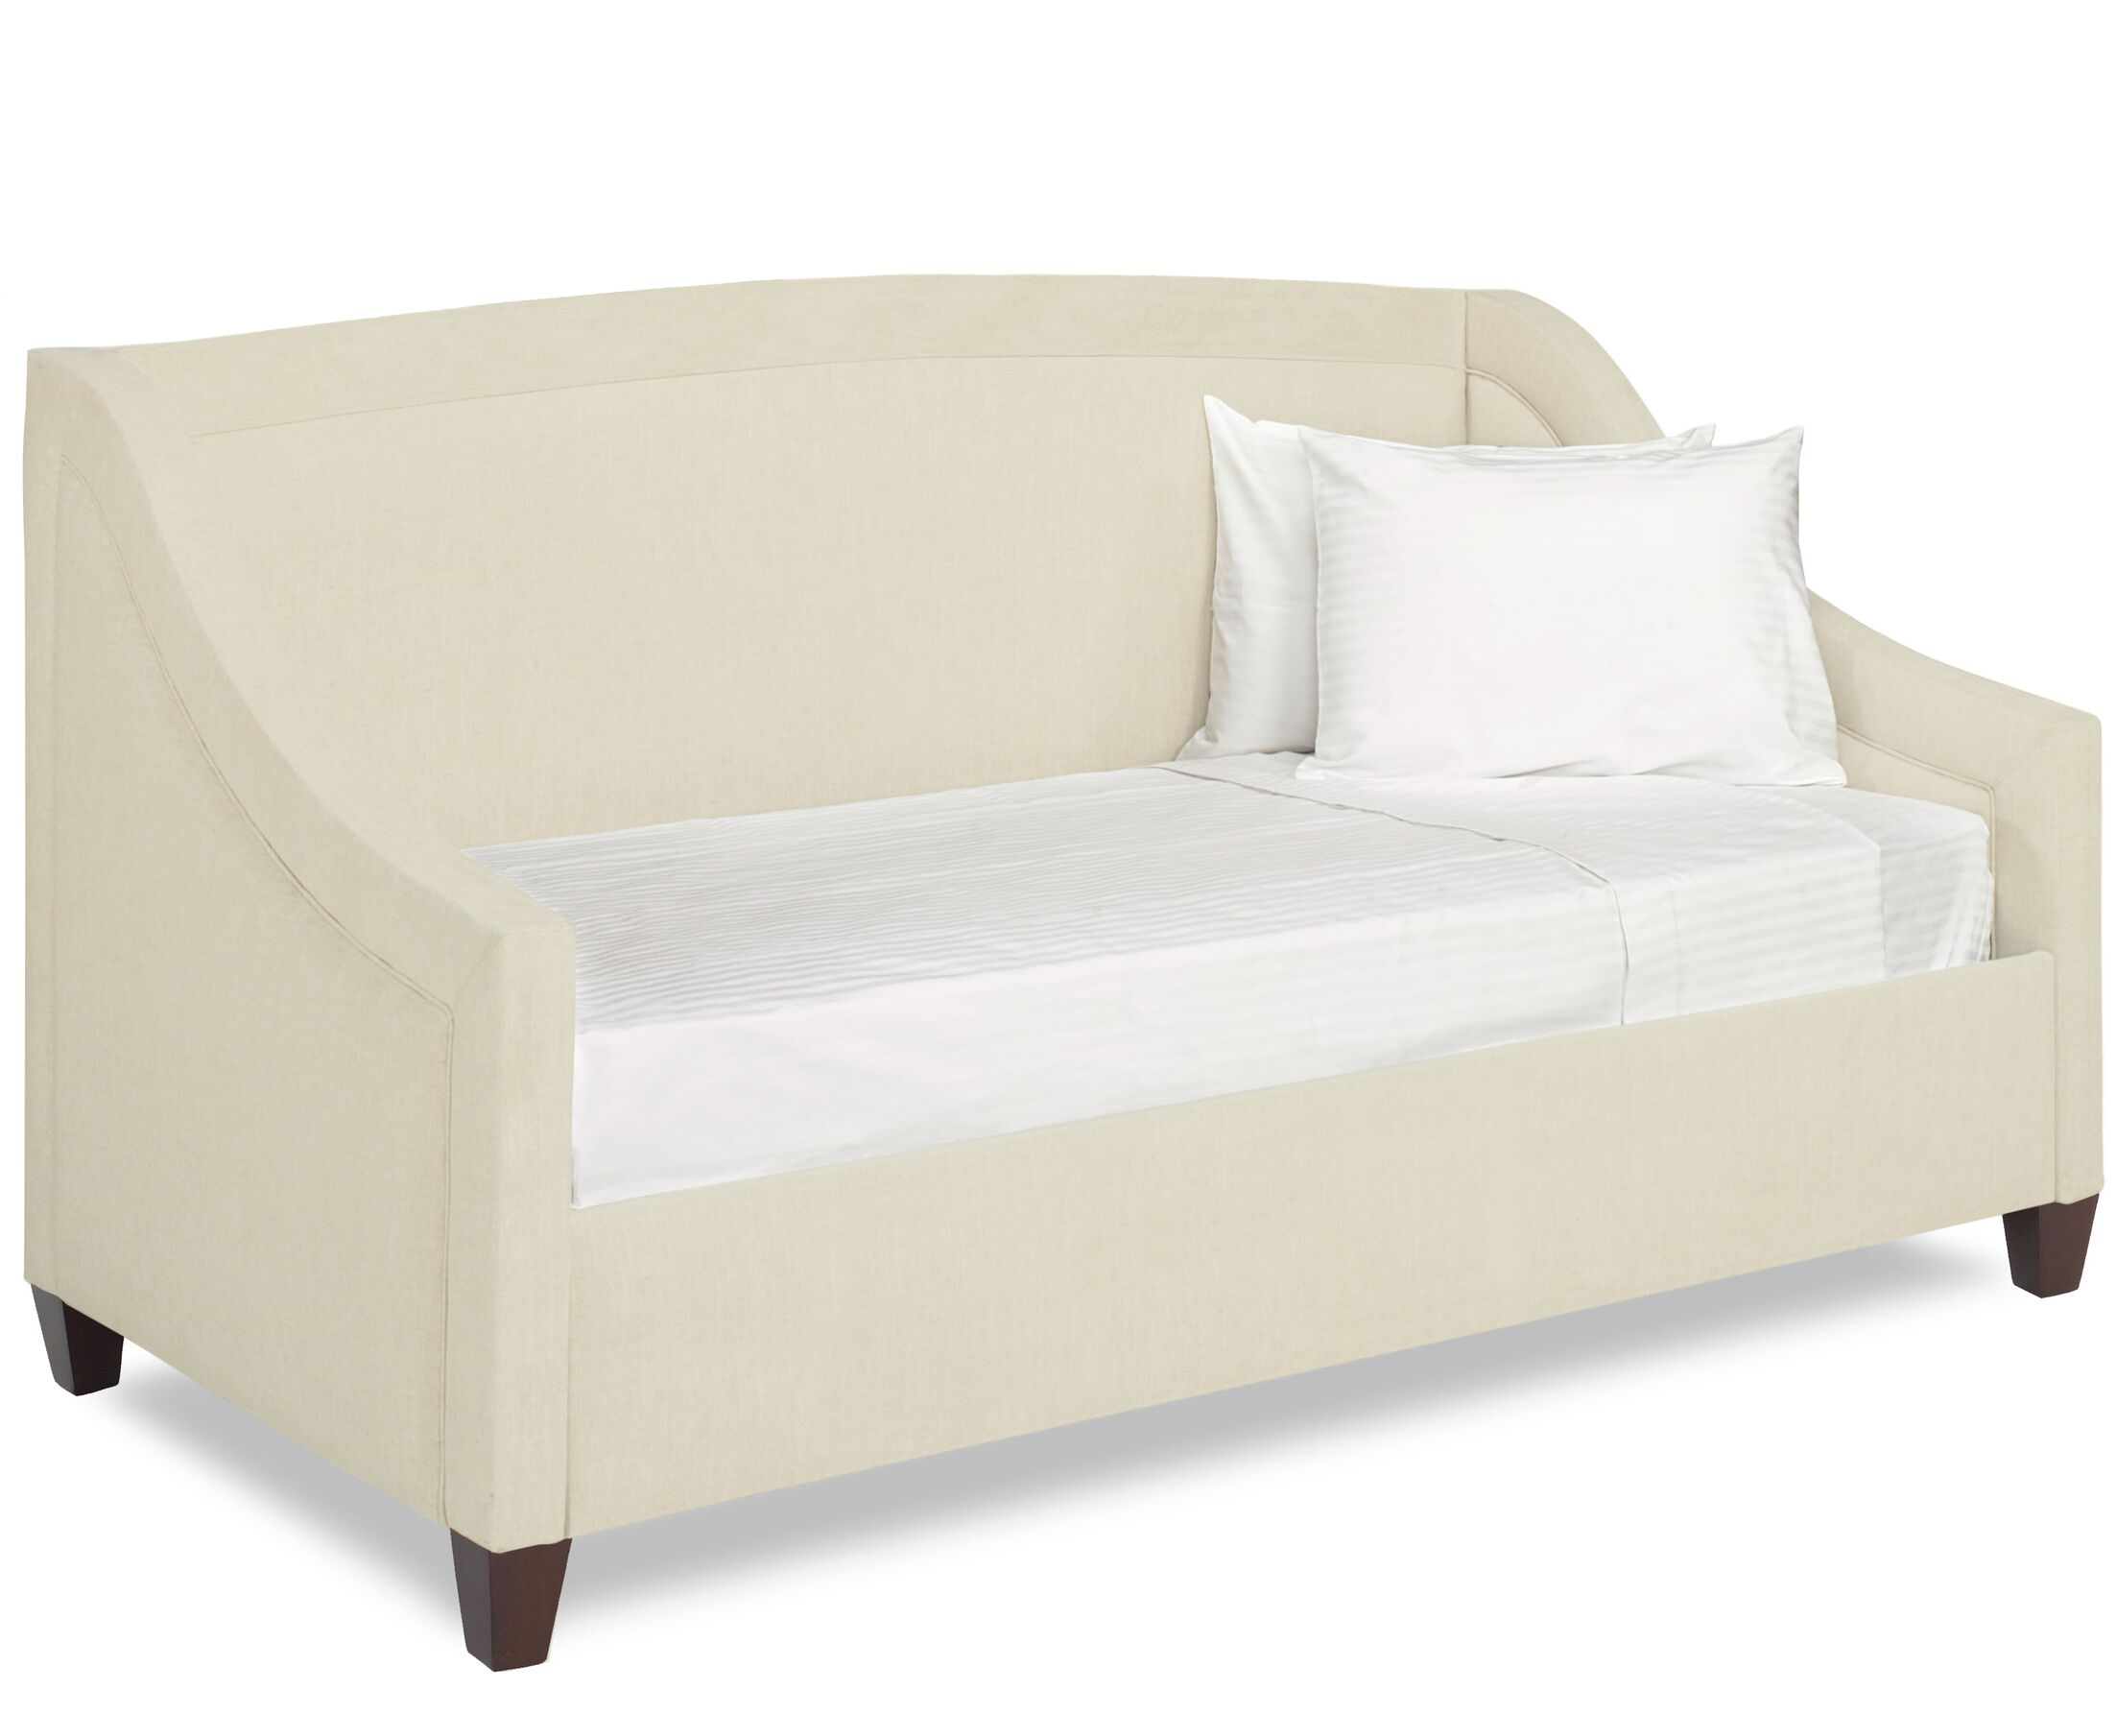 Dreamtime Daybed with Mattress Color: Cream, Size: Twin XL